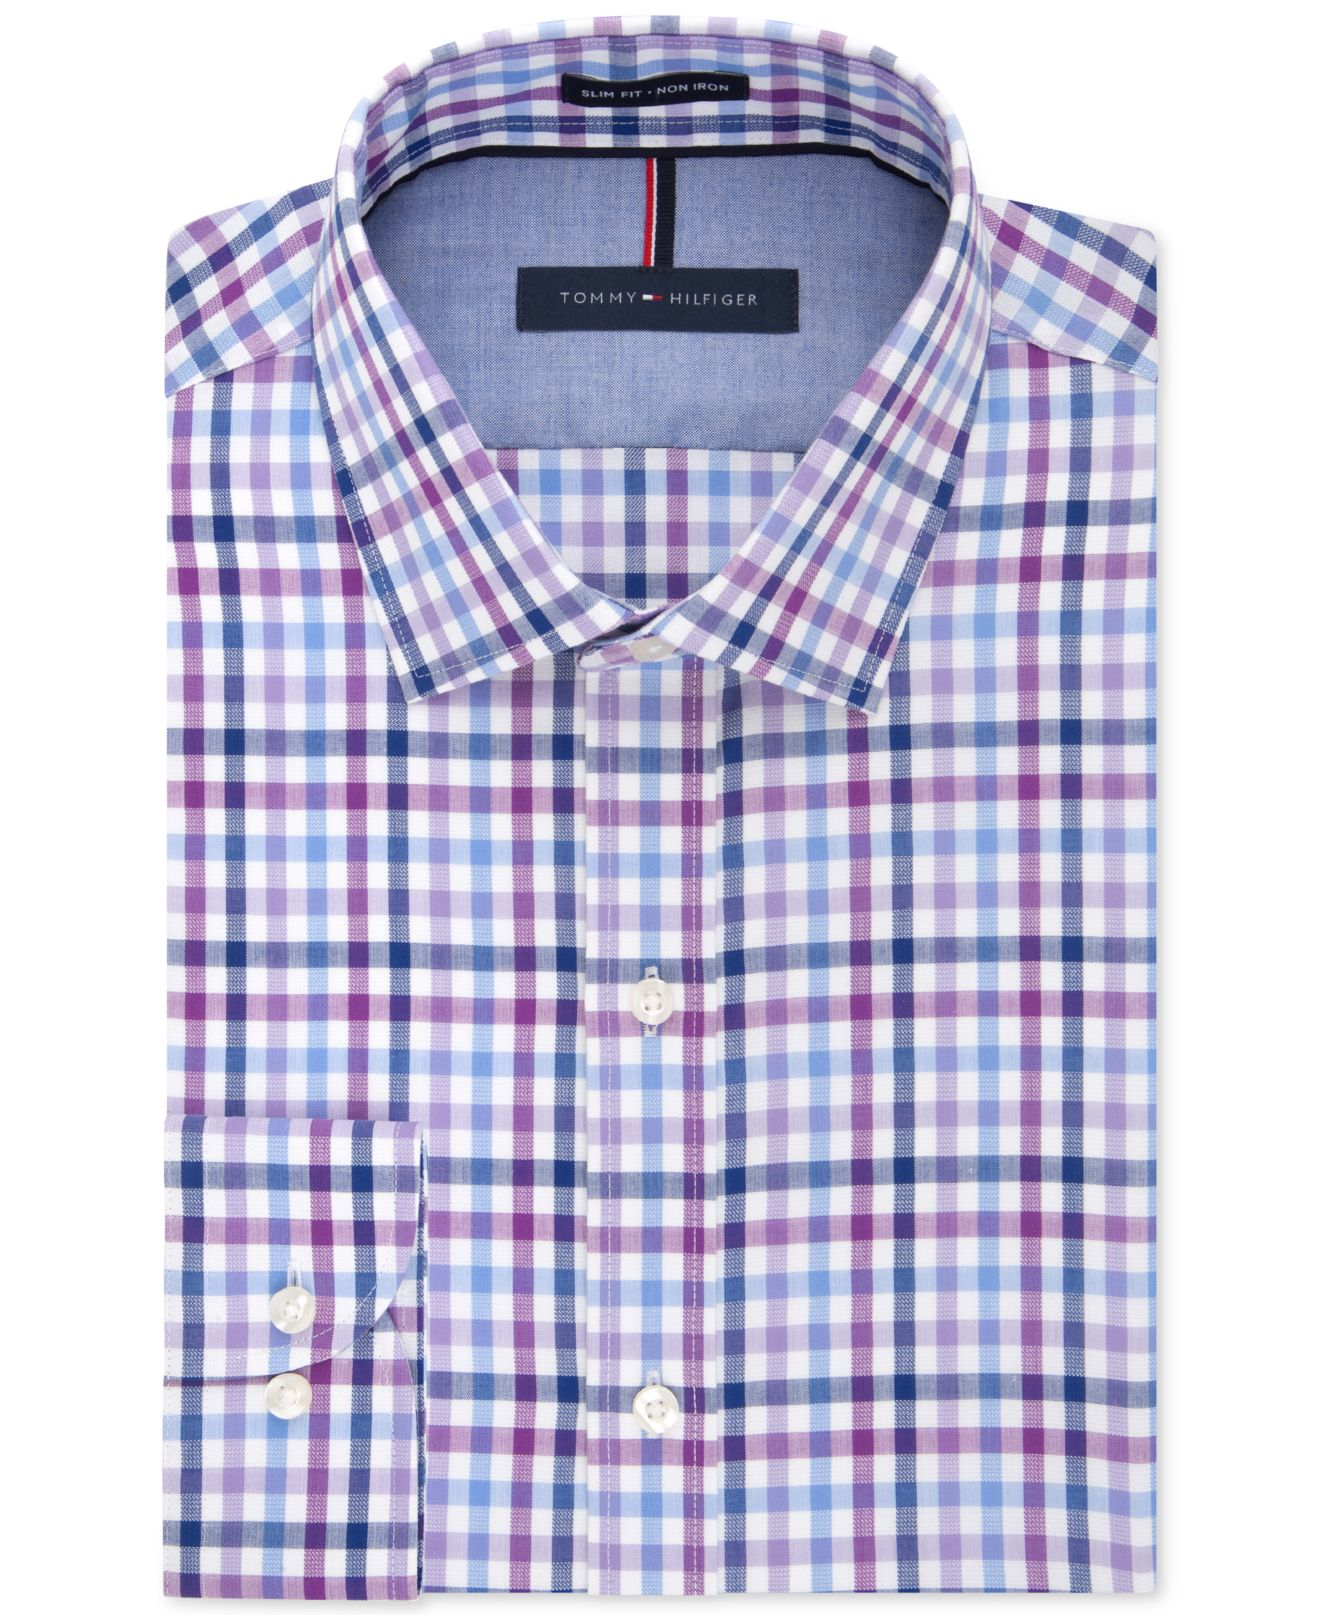 Lyst tommy hilfiger slim fit non iron blue violet for Slim fit non iron dress shirts